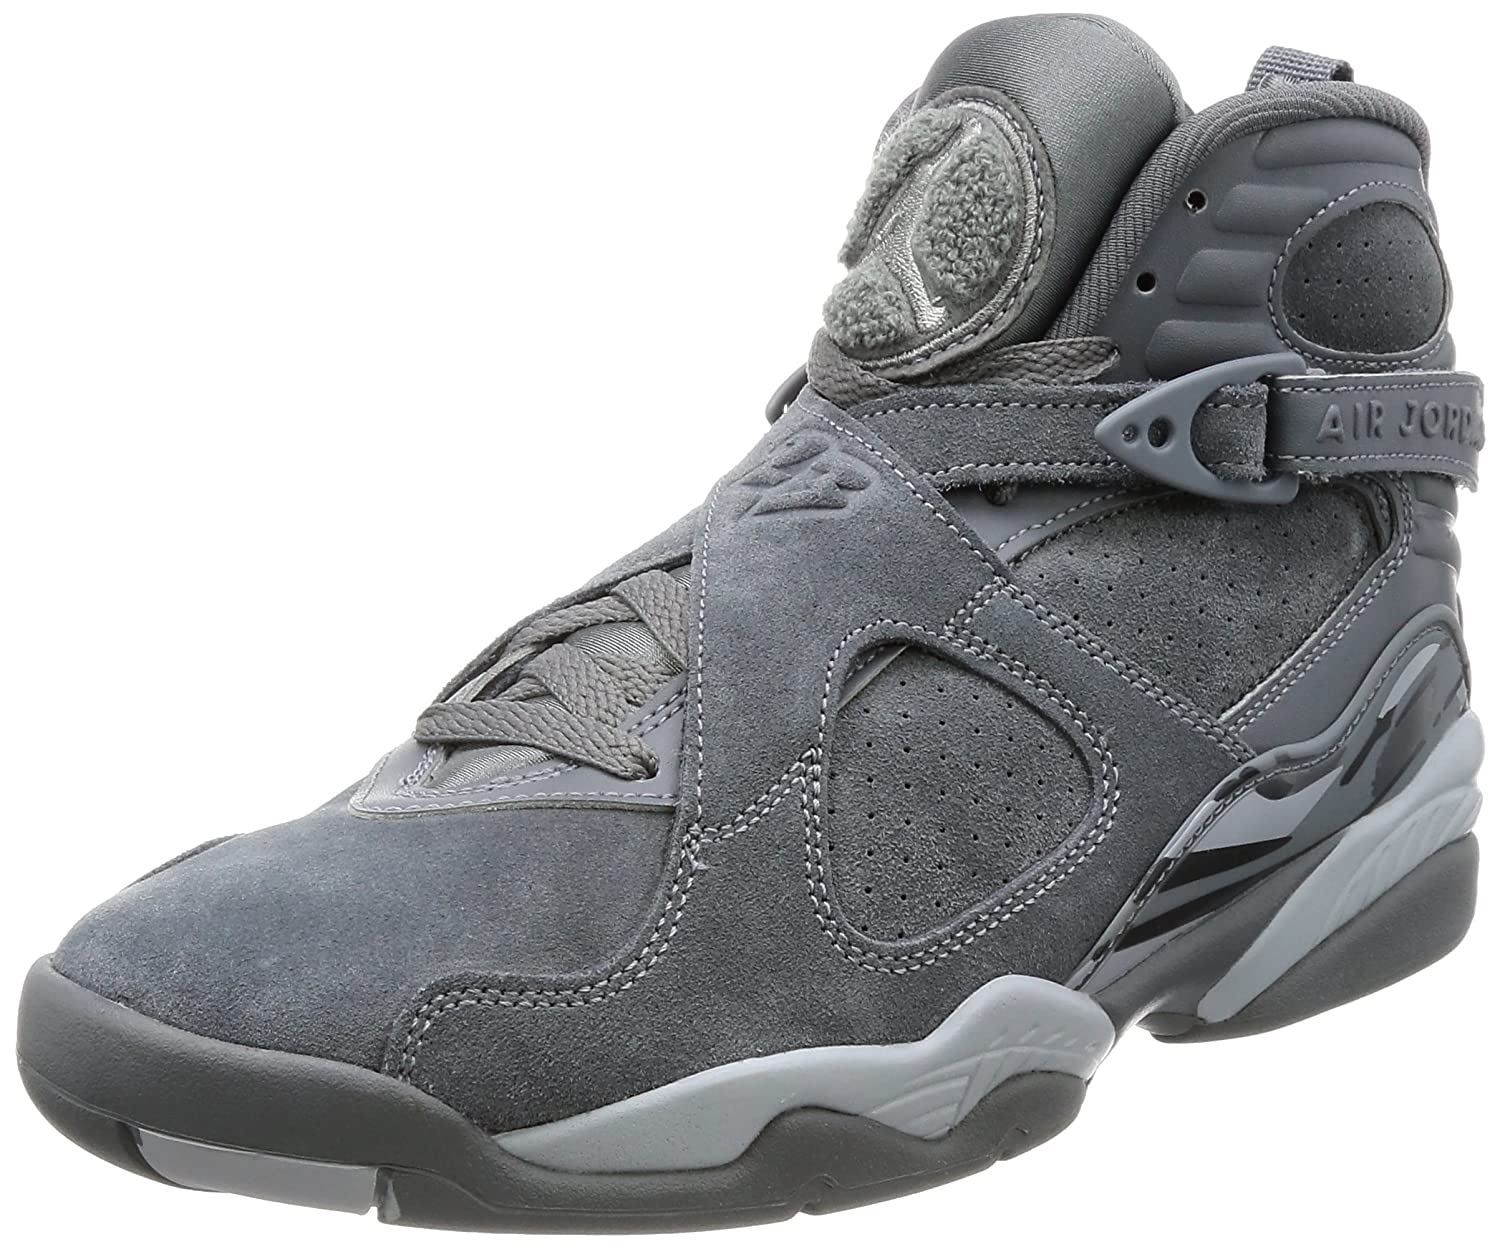 low priced fdfc6 99424 Amazon.com   Air Jordan 8 Retro - 305381 014   Basketball